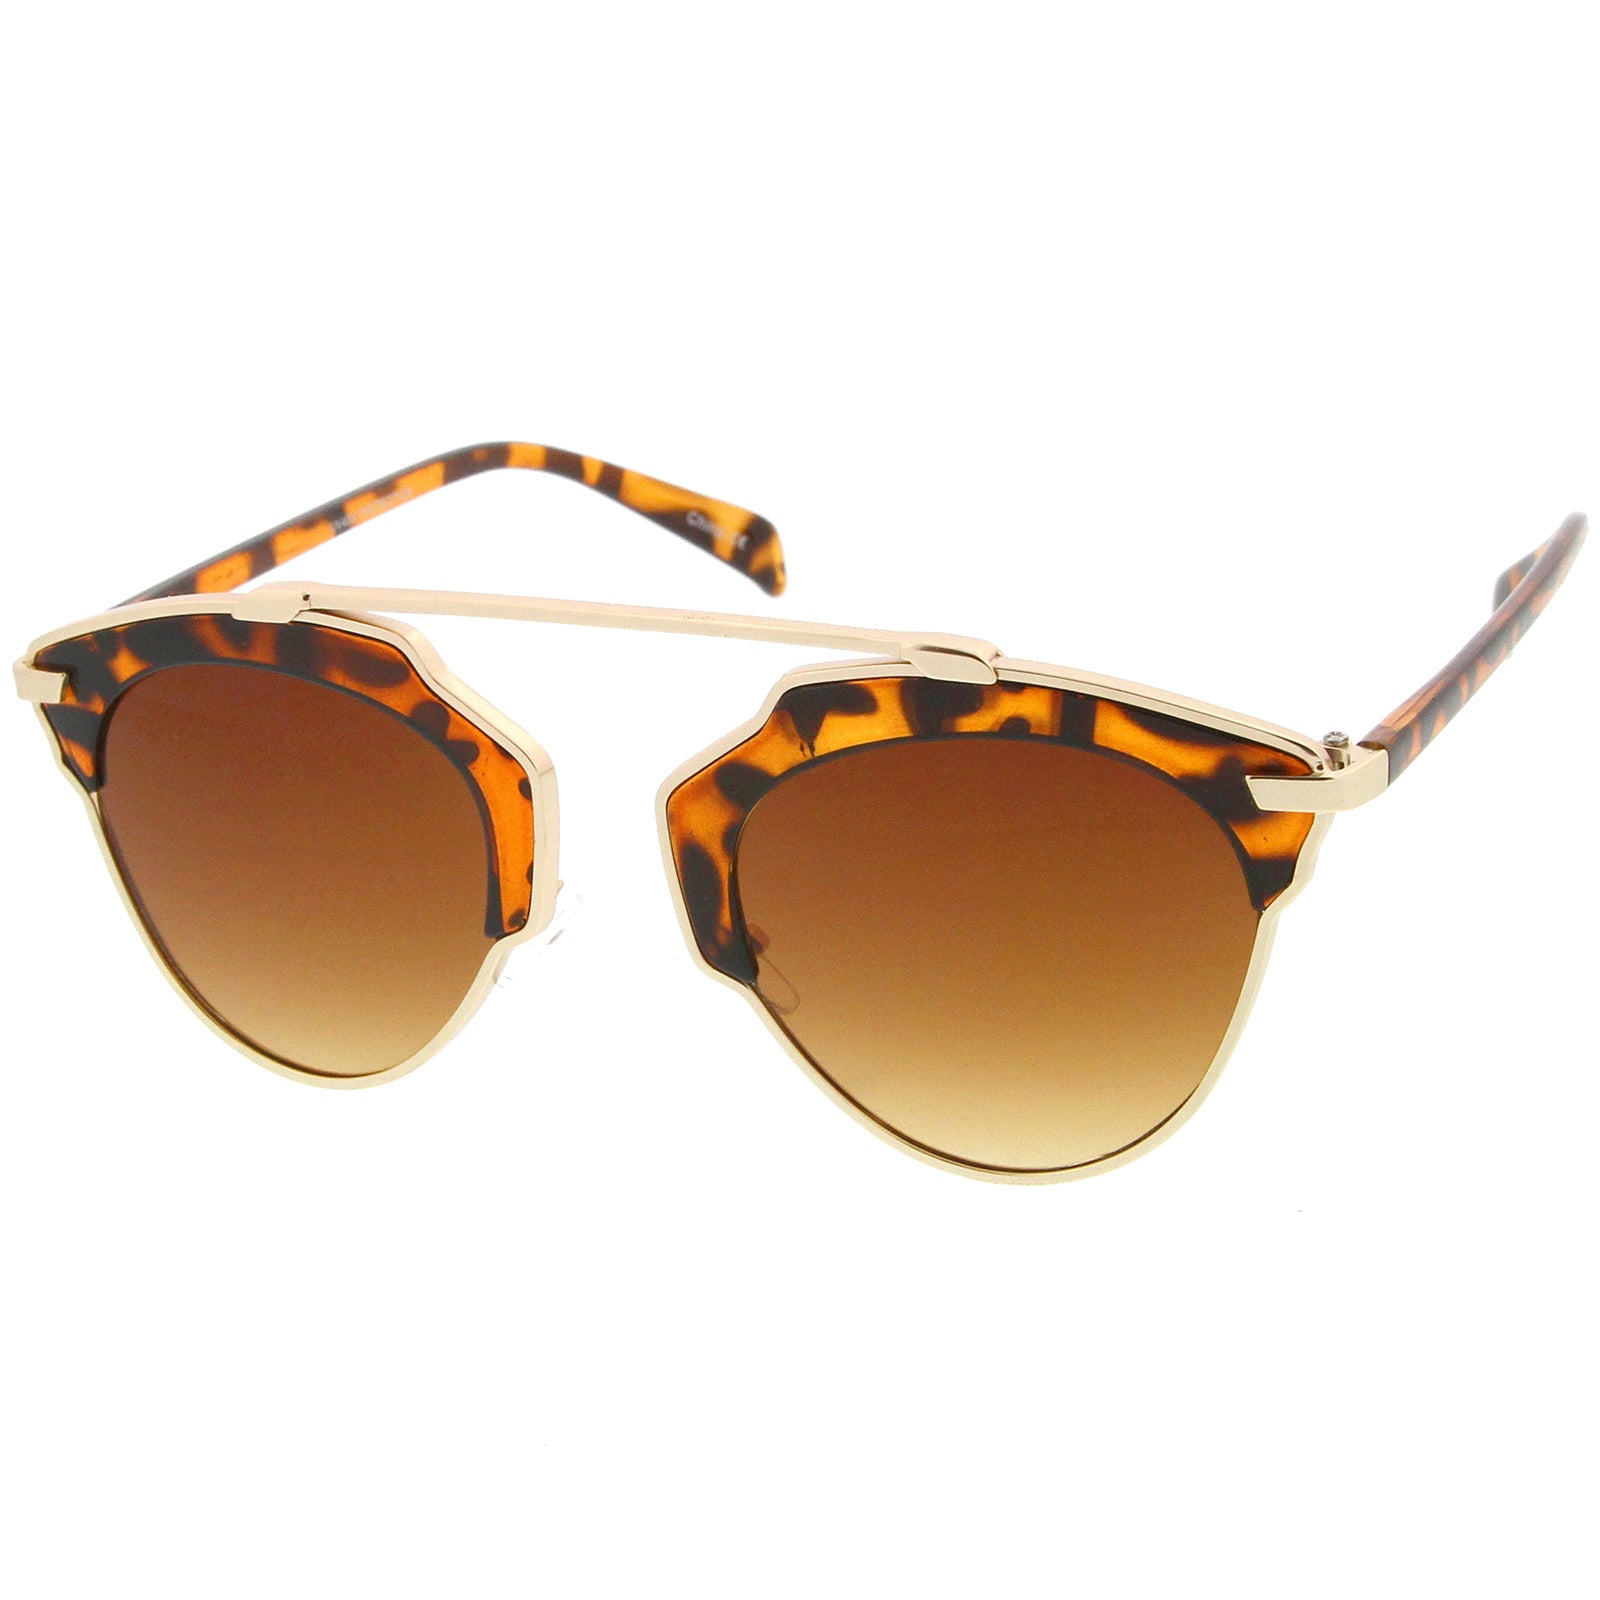 High Fashion Two-Toned Pantos Crossbar Tinted Lens Aviator Sunglasses 52mm - sunglass.la - 2